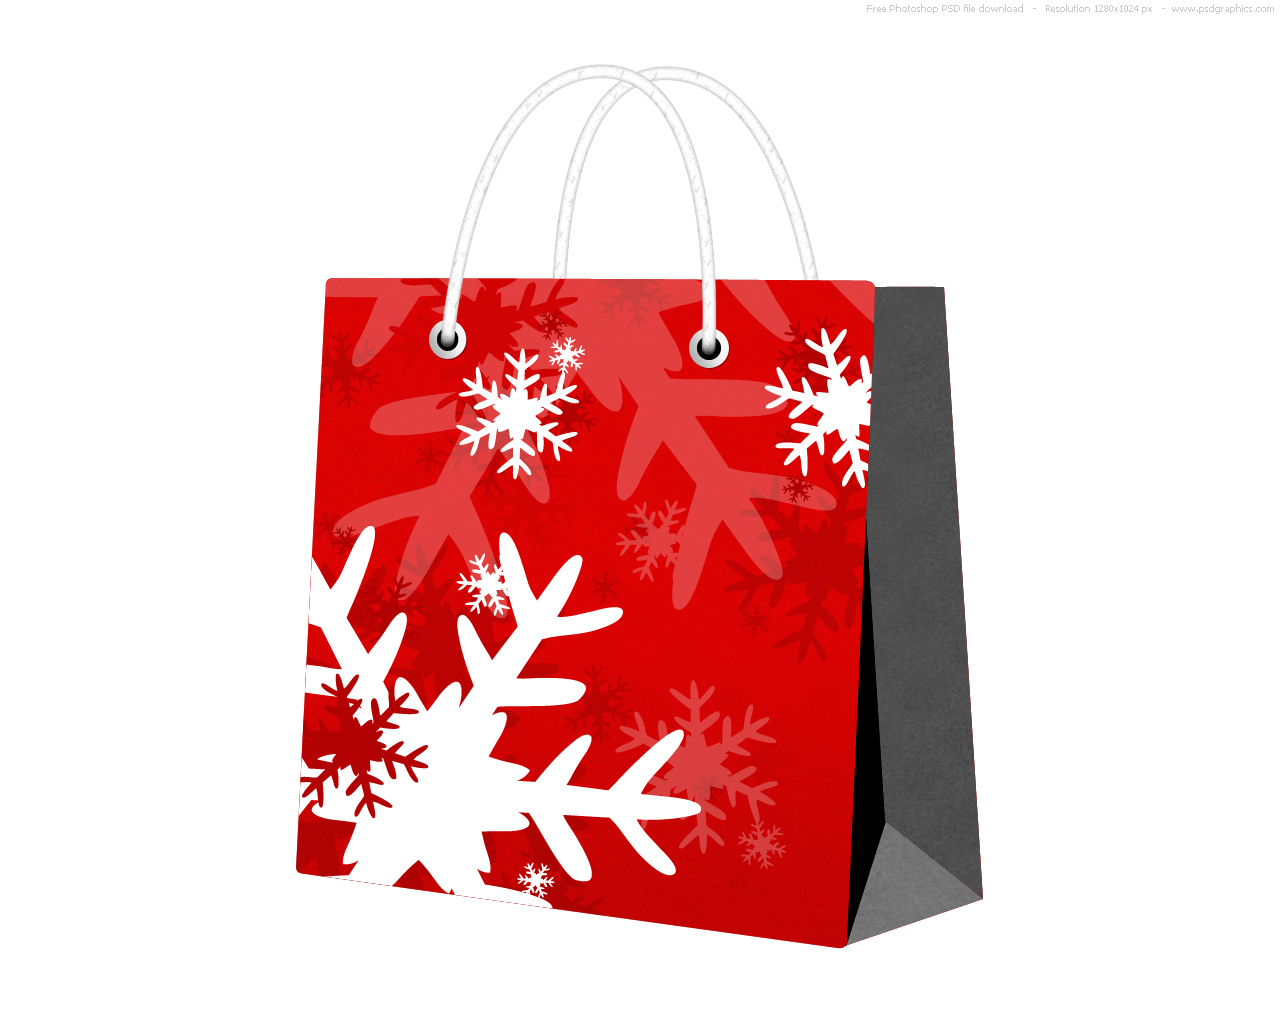 christmas gift bags clipart - photo #32